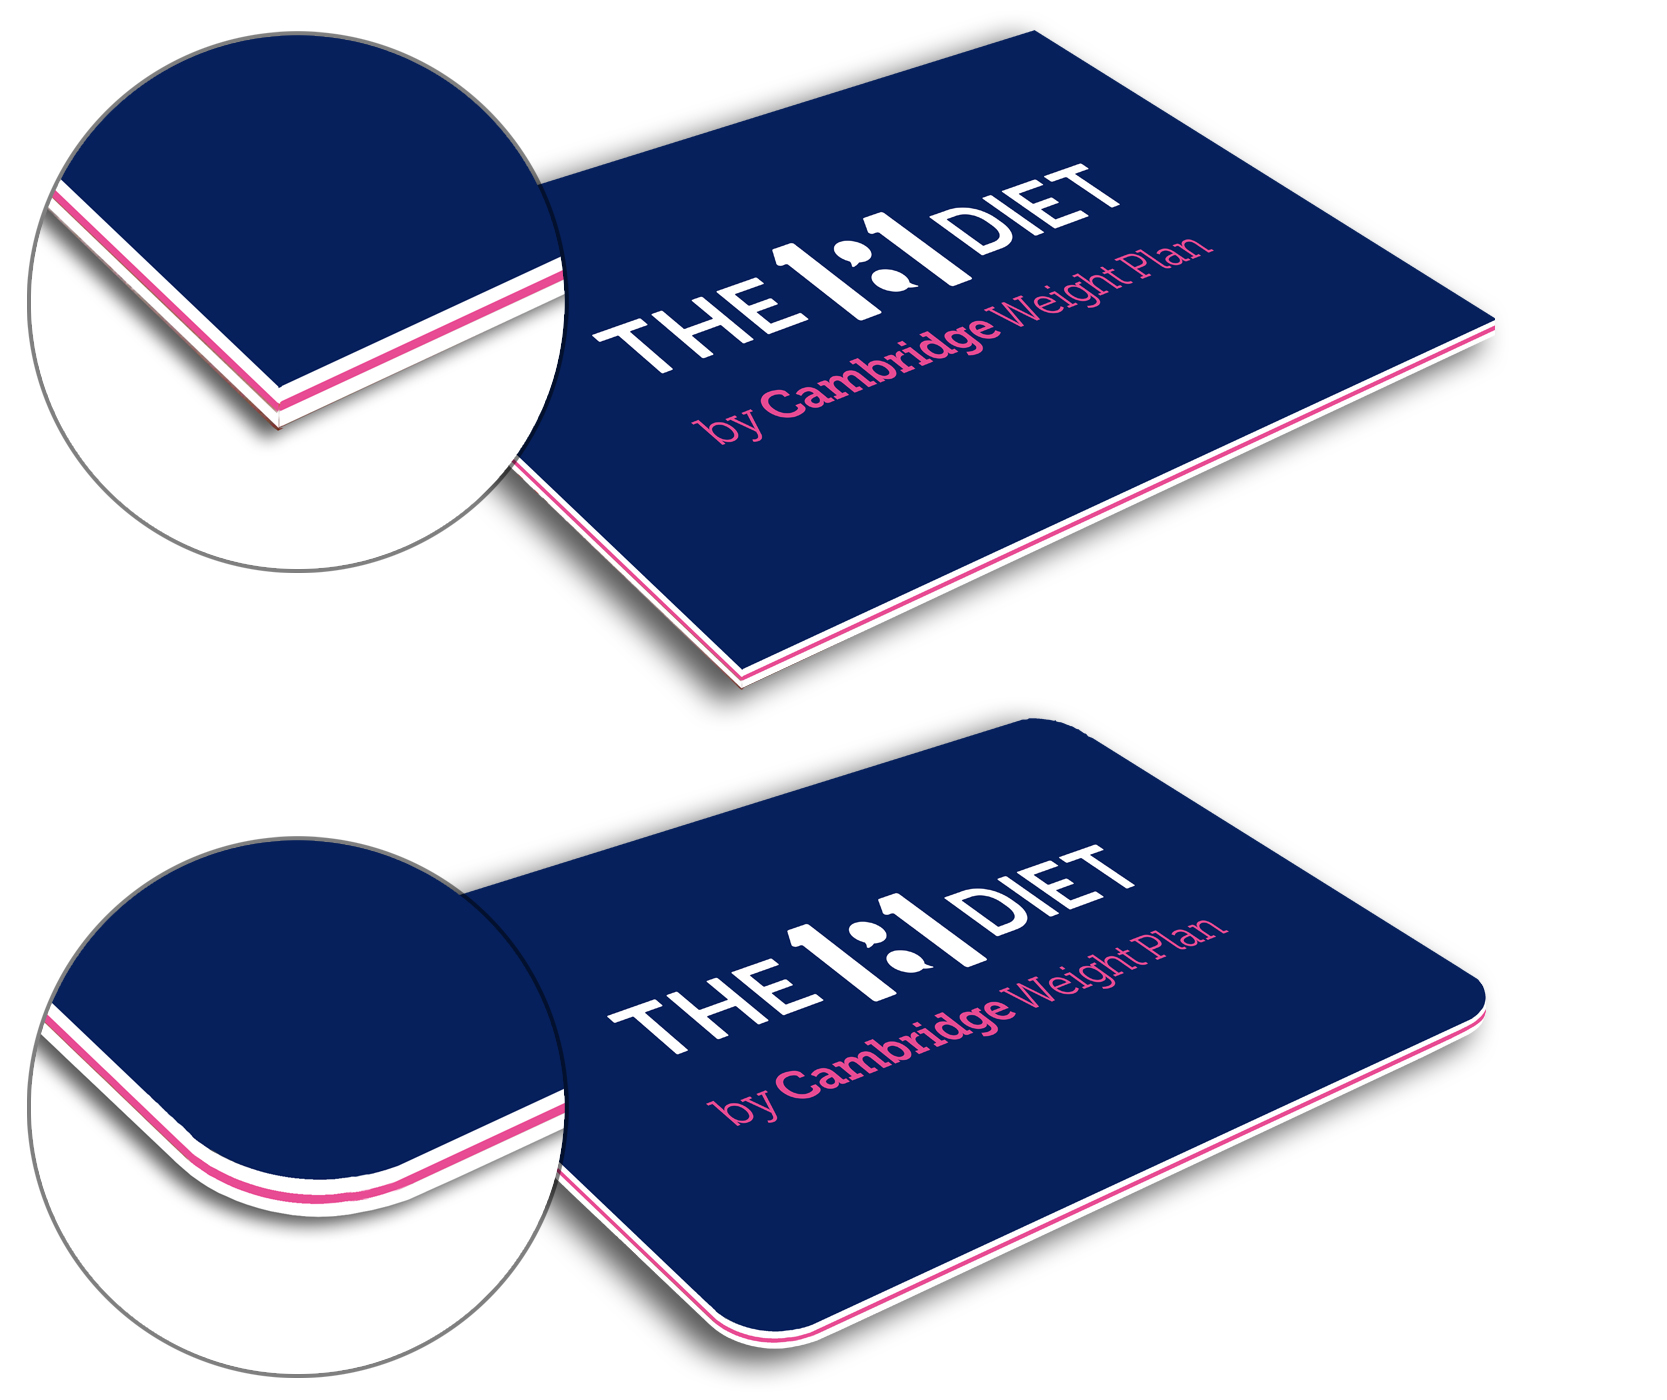 The 1:1 Diet Triplex business cards